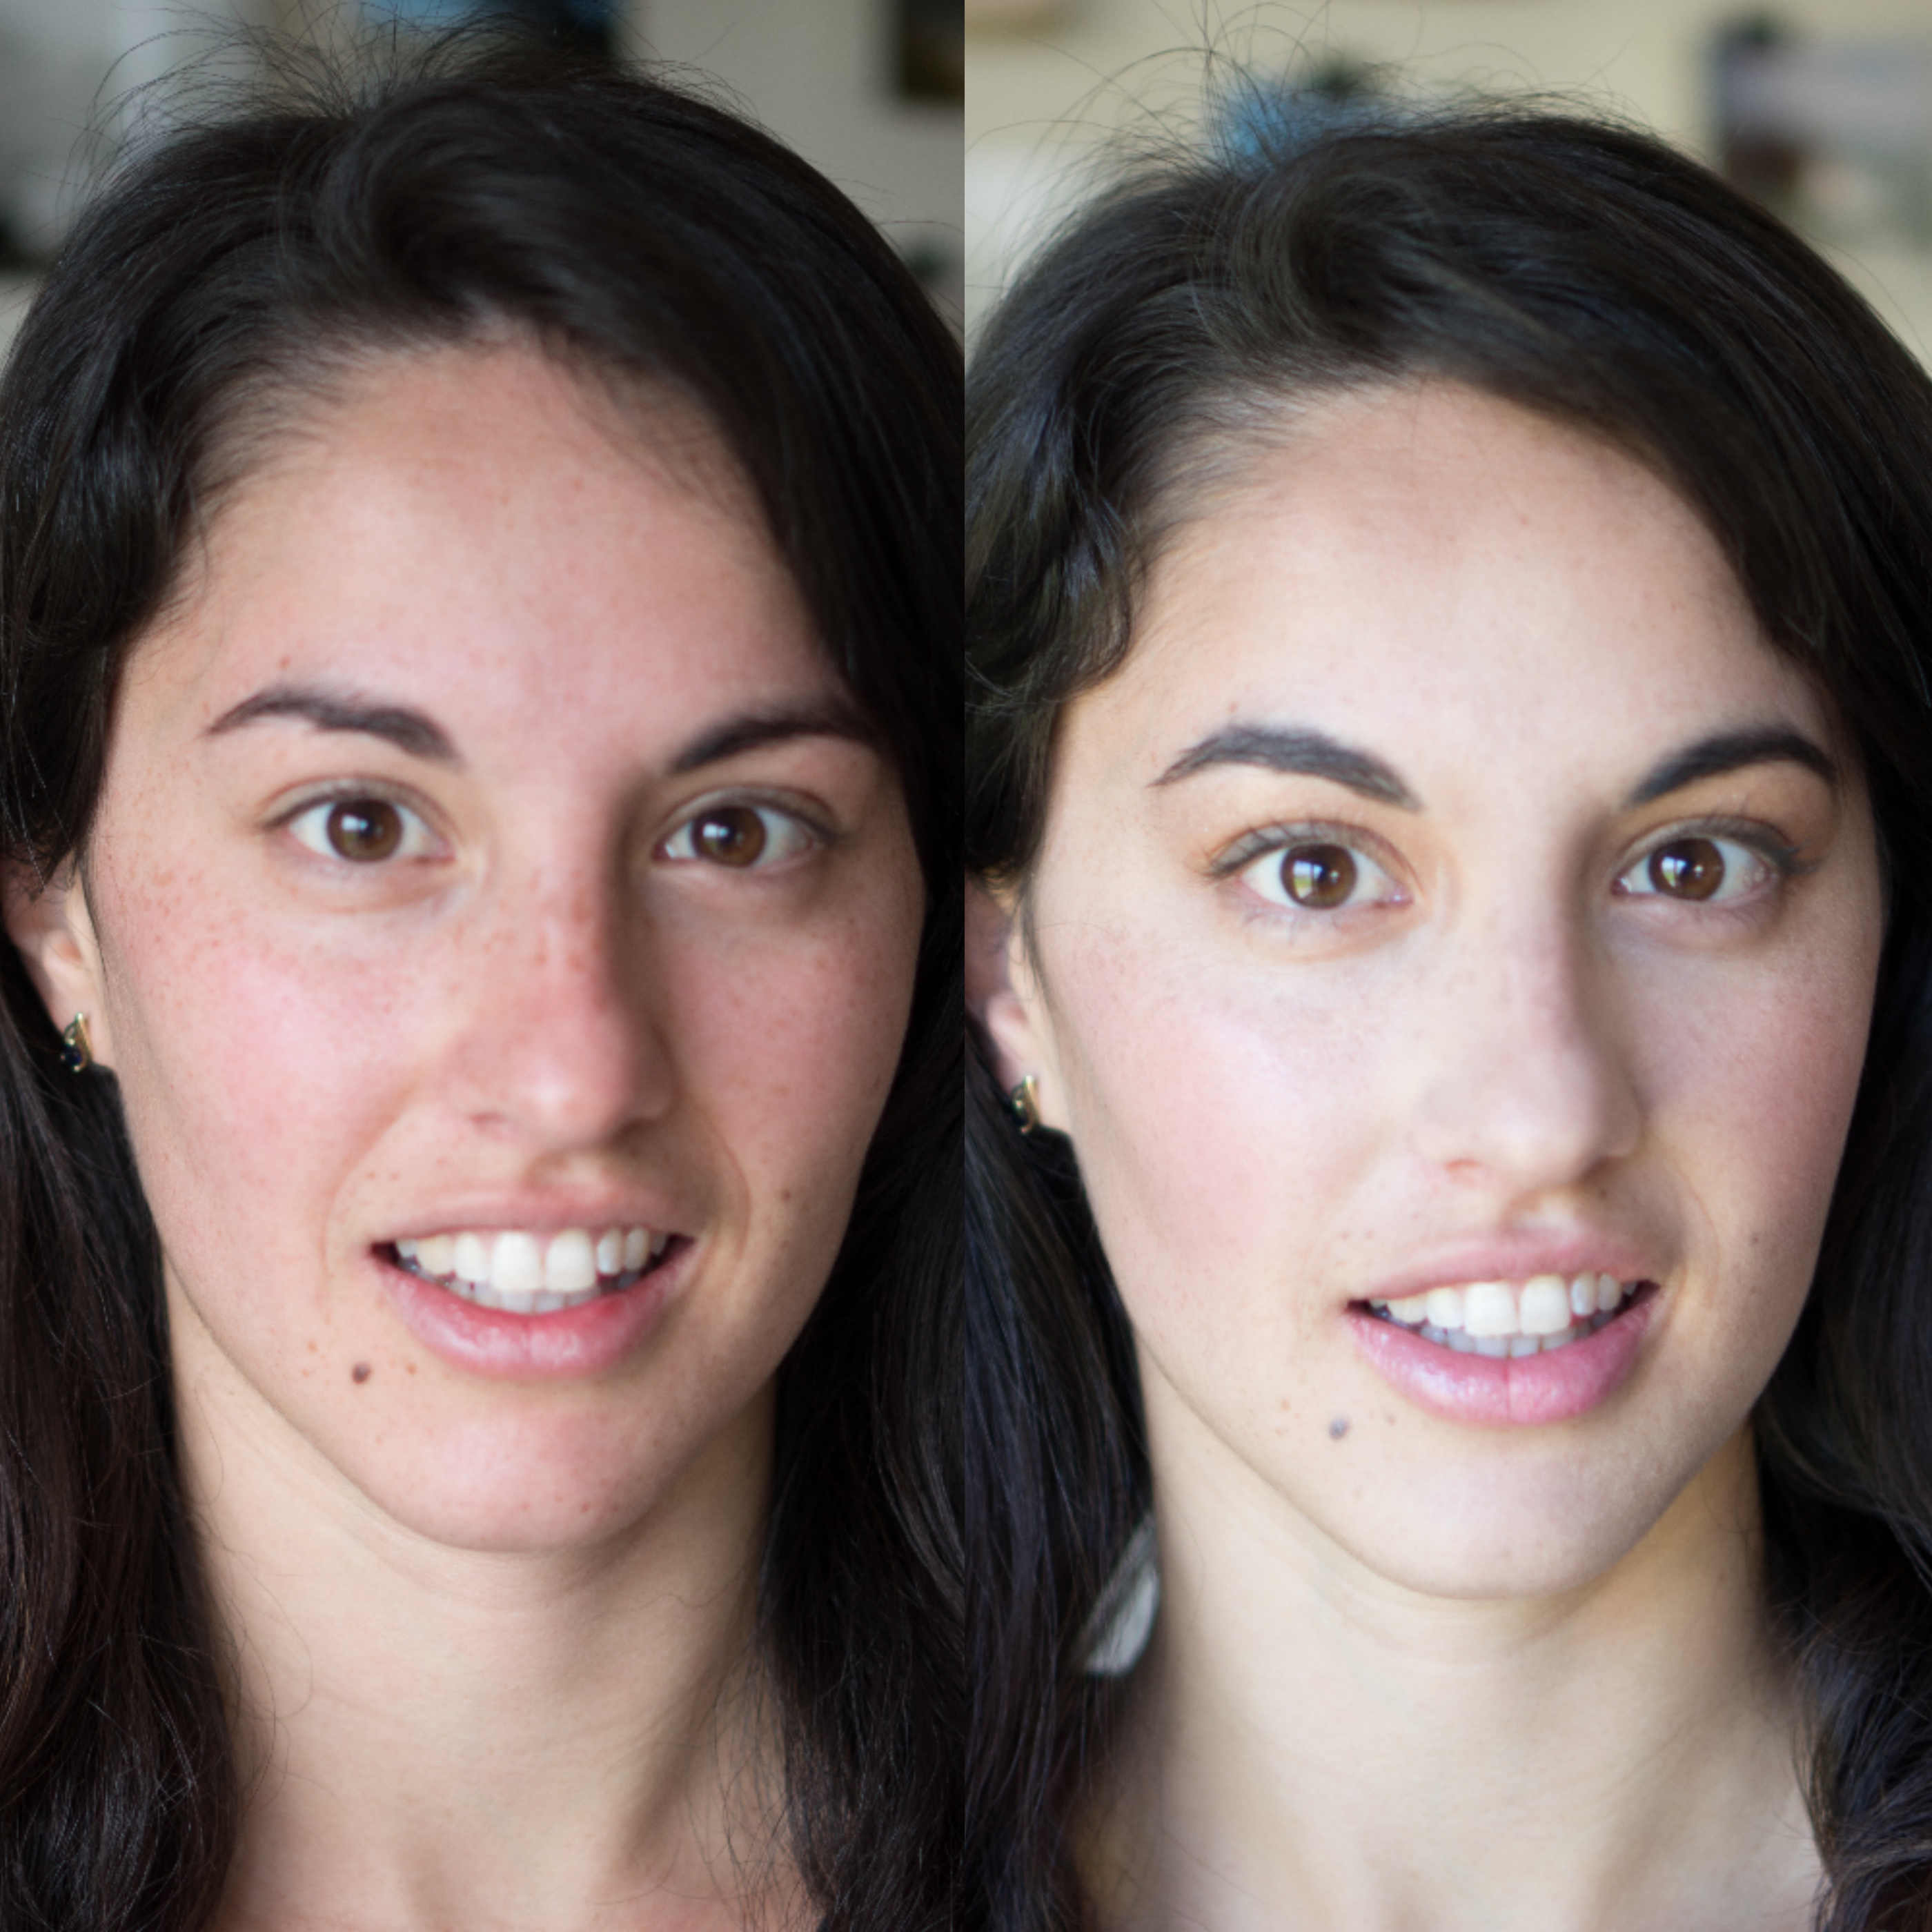 Before and after with Maskcara makeup on www.maskcarabeautygirl.com, we share a simple and natural every day look that can be easily achieved with one compact from Maskcara Beauty